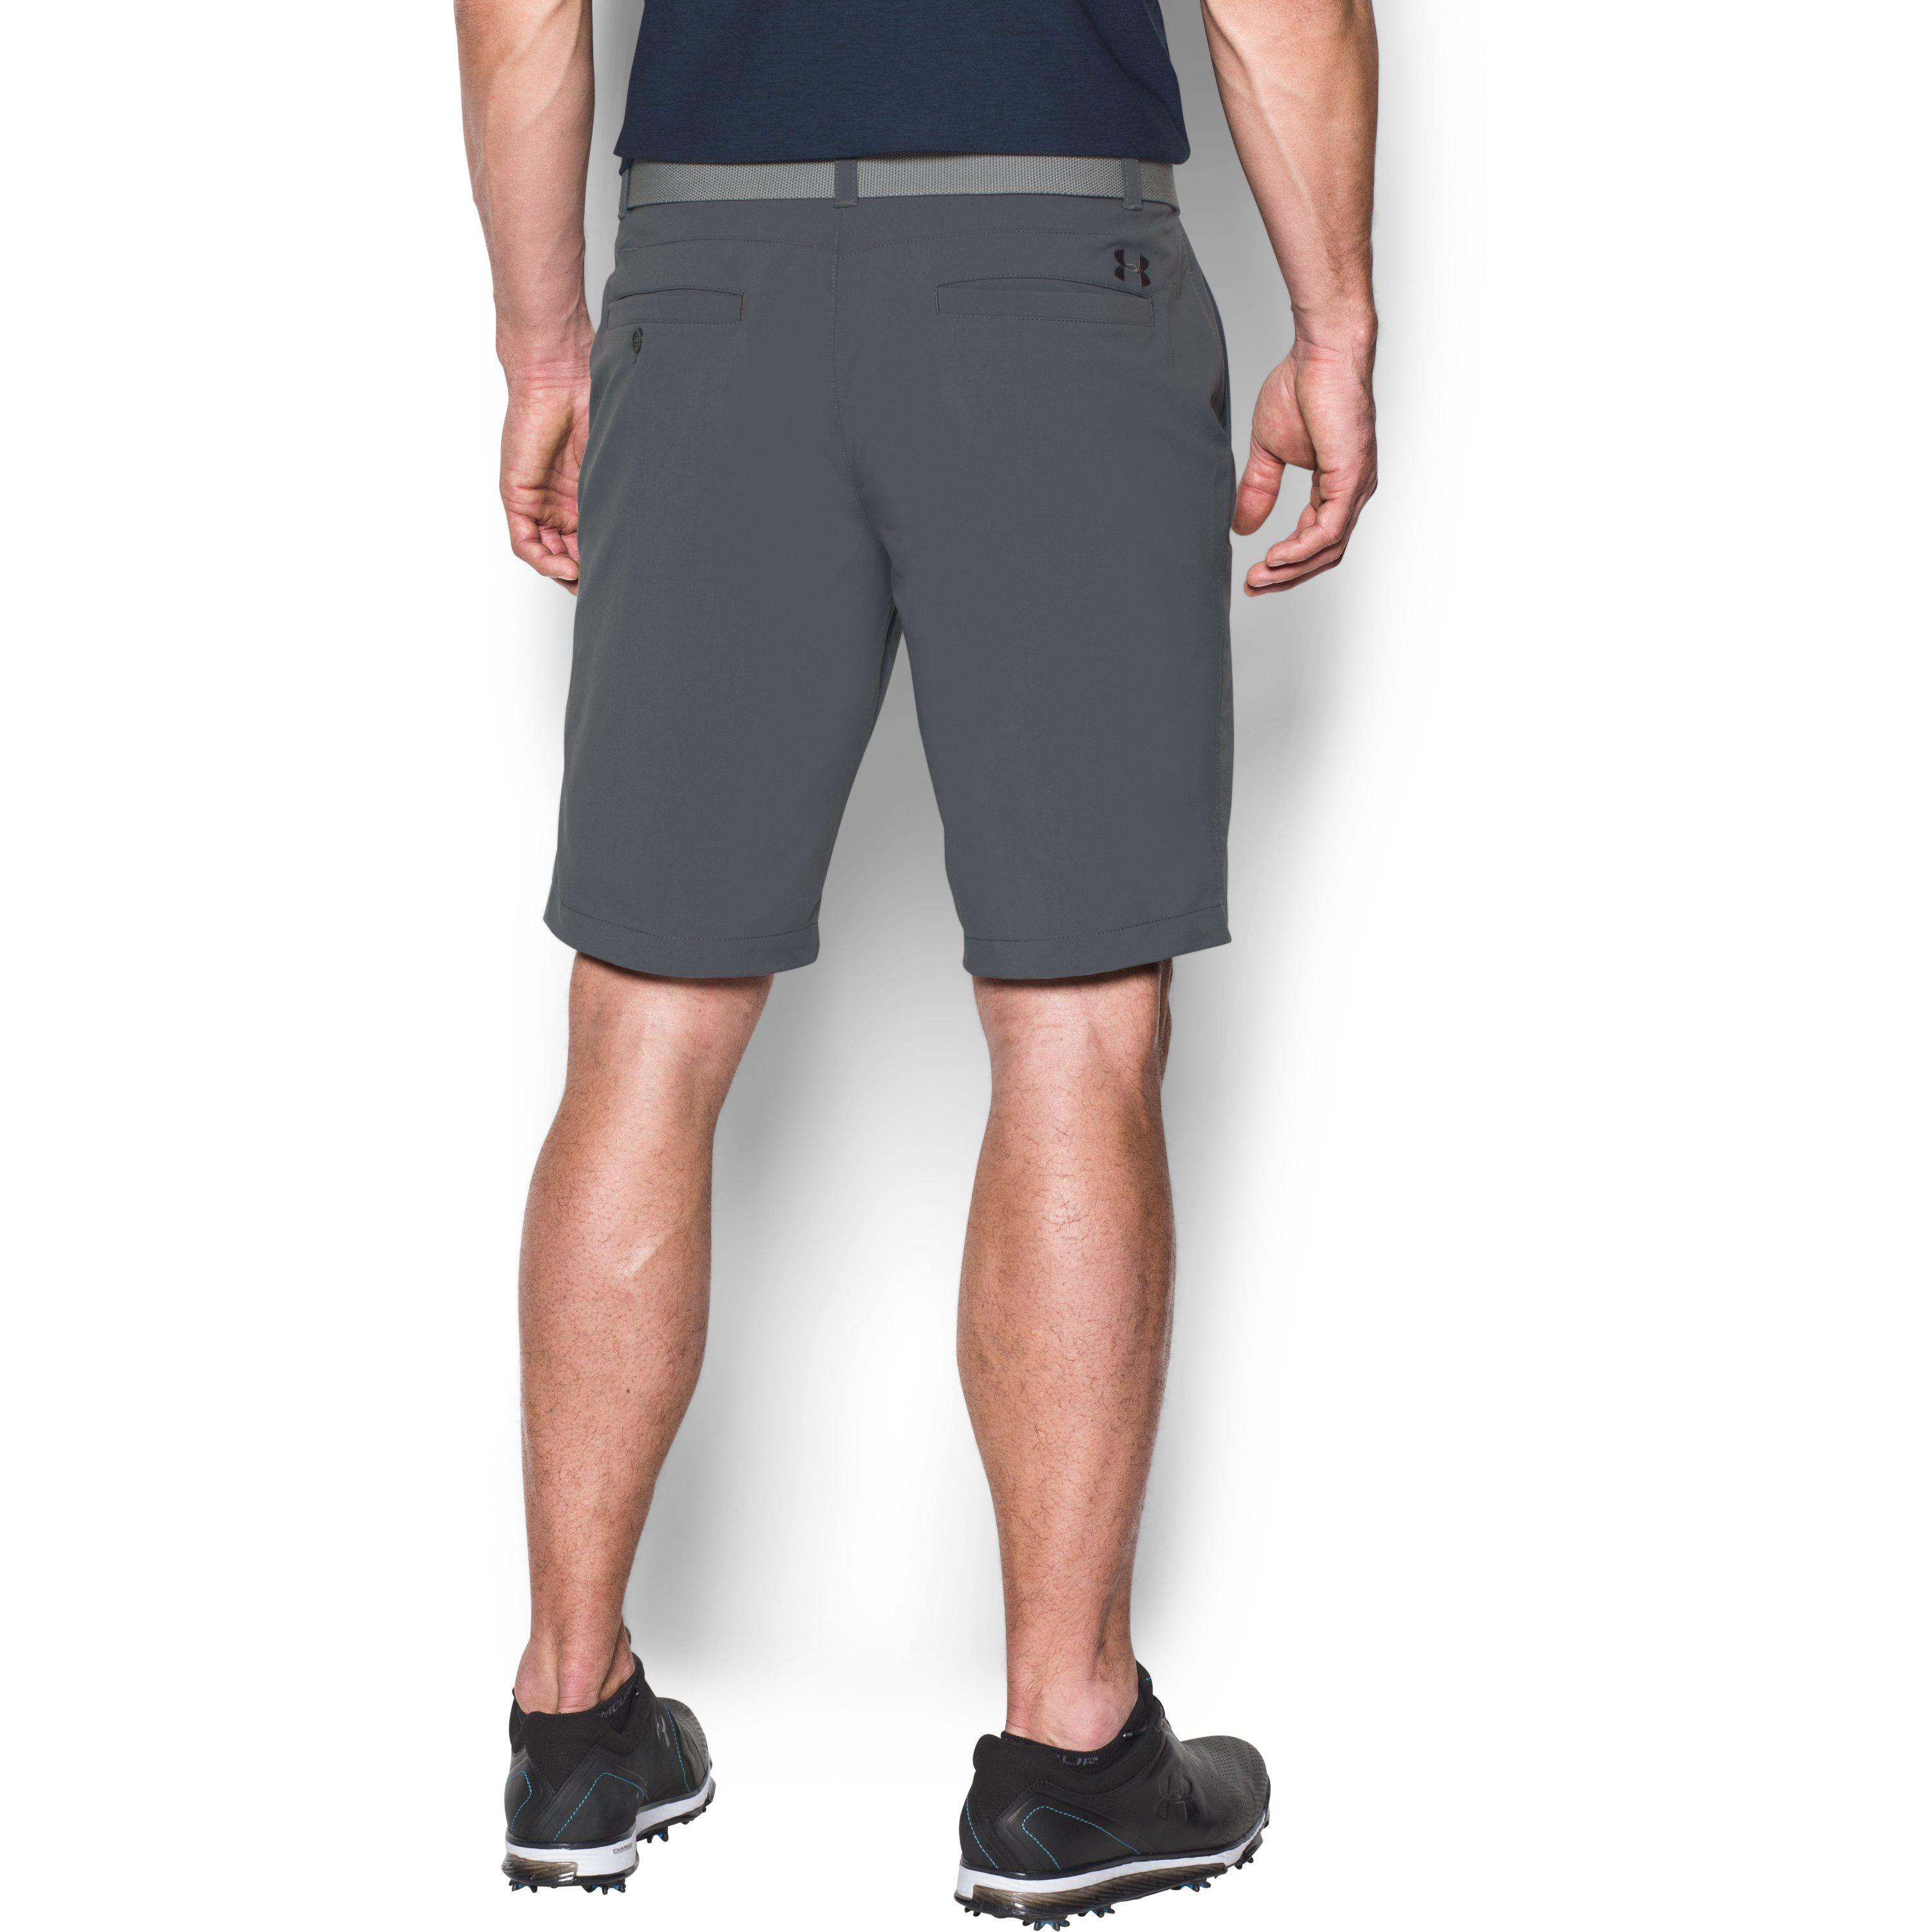 Lyst - Under Armour Men s Ua Match Play Tapered Shorts in Gray for Men 1aa5d1e1149